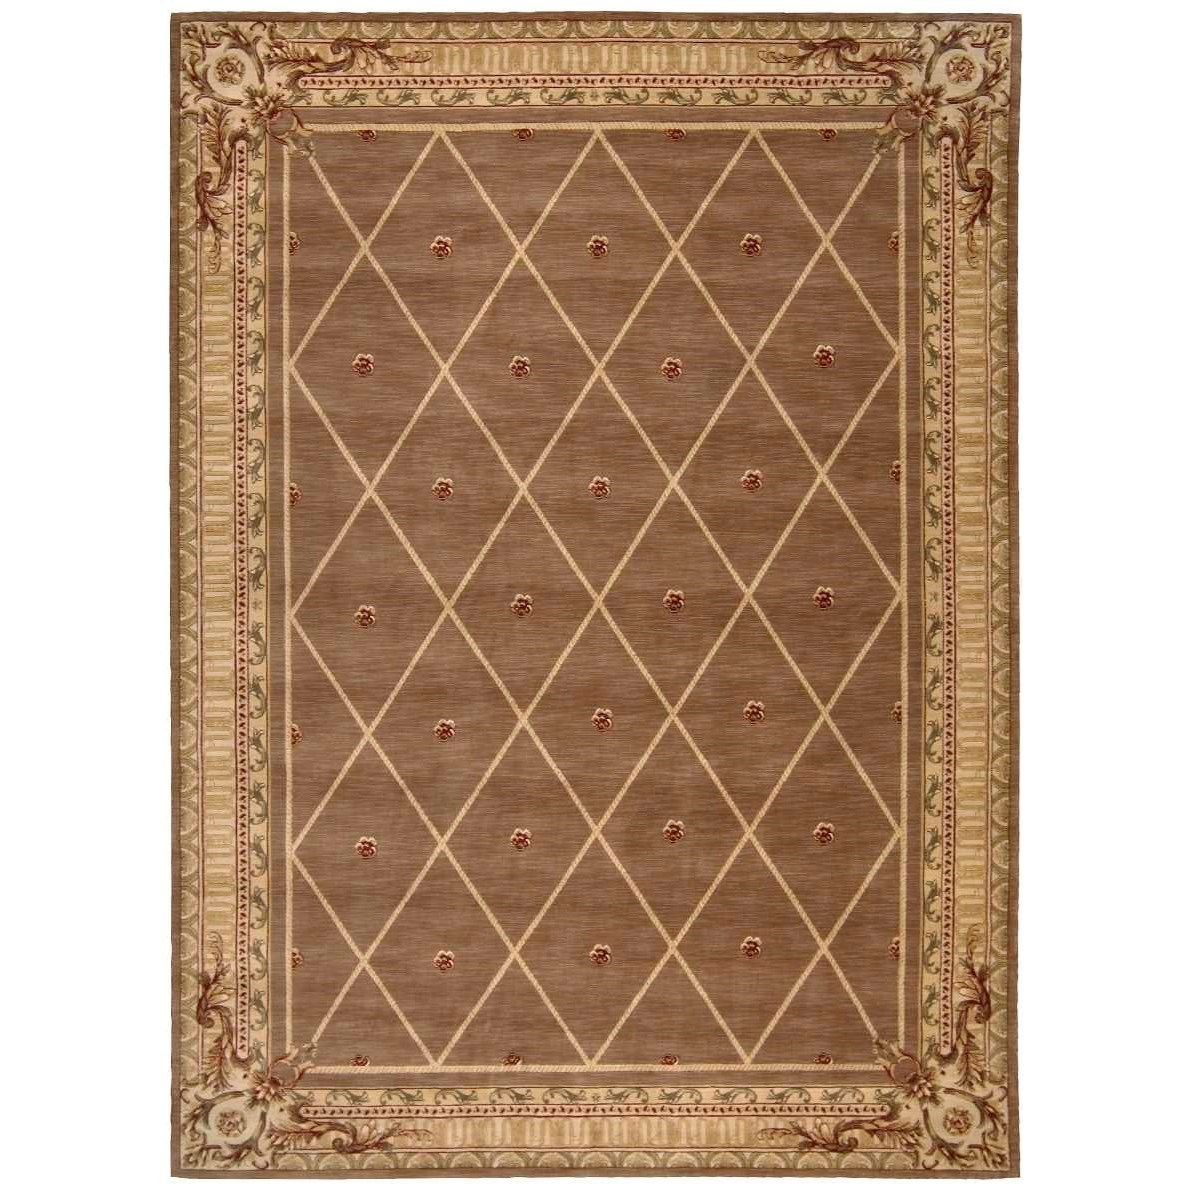 """Ashton House 9'6"""" x 13' Cocoa Rectangle Rug by Nourison at Home Collections Furniture"""